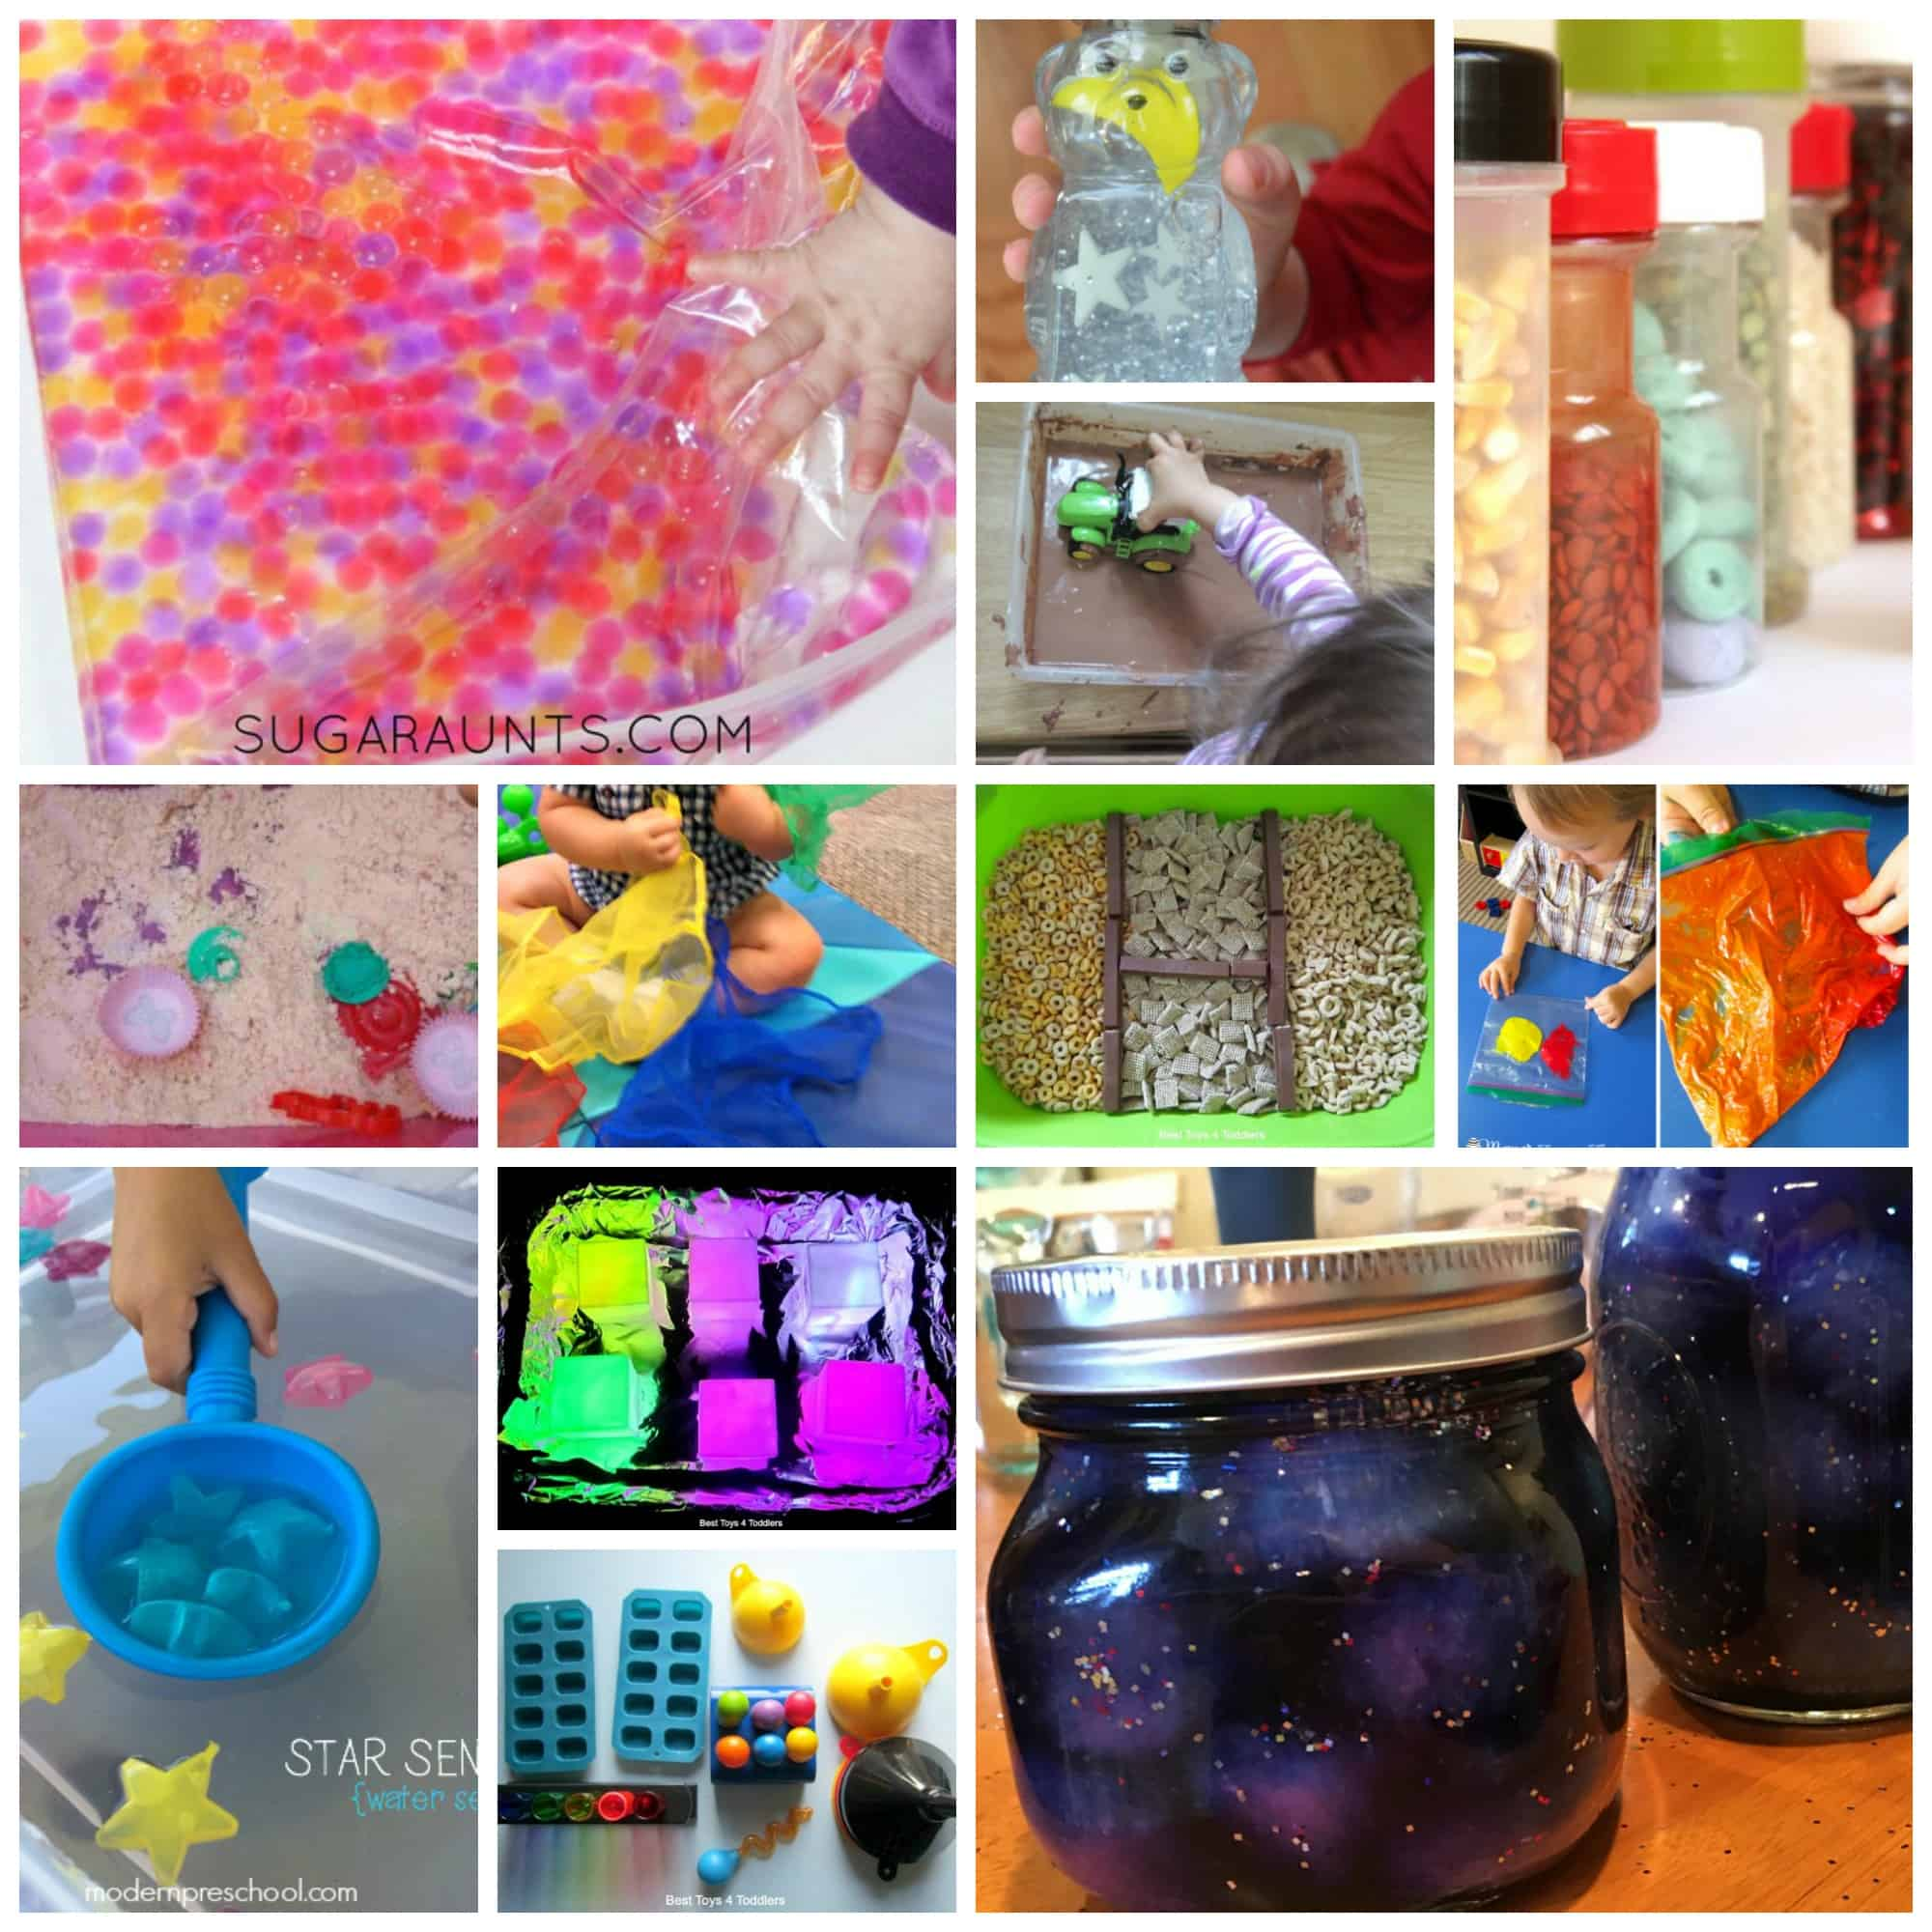 sensory activities a one year old can do too!